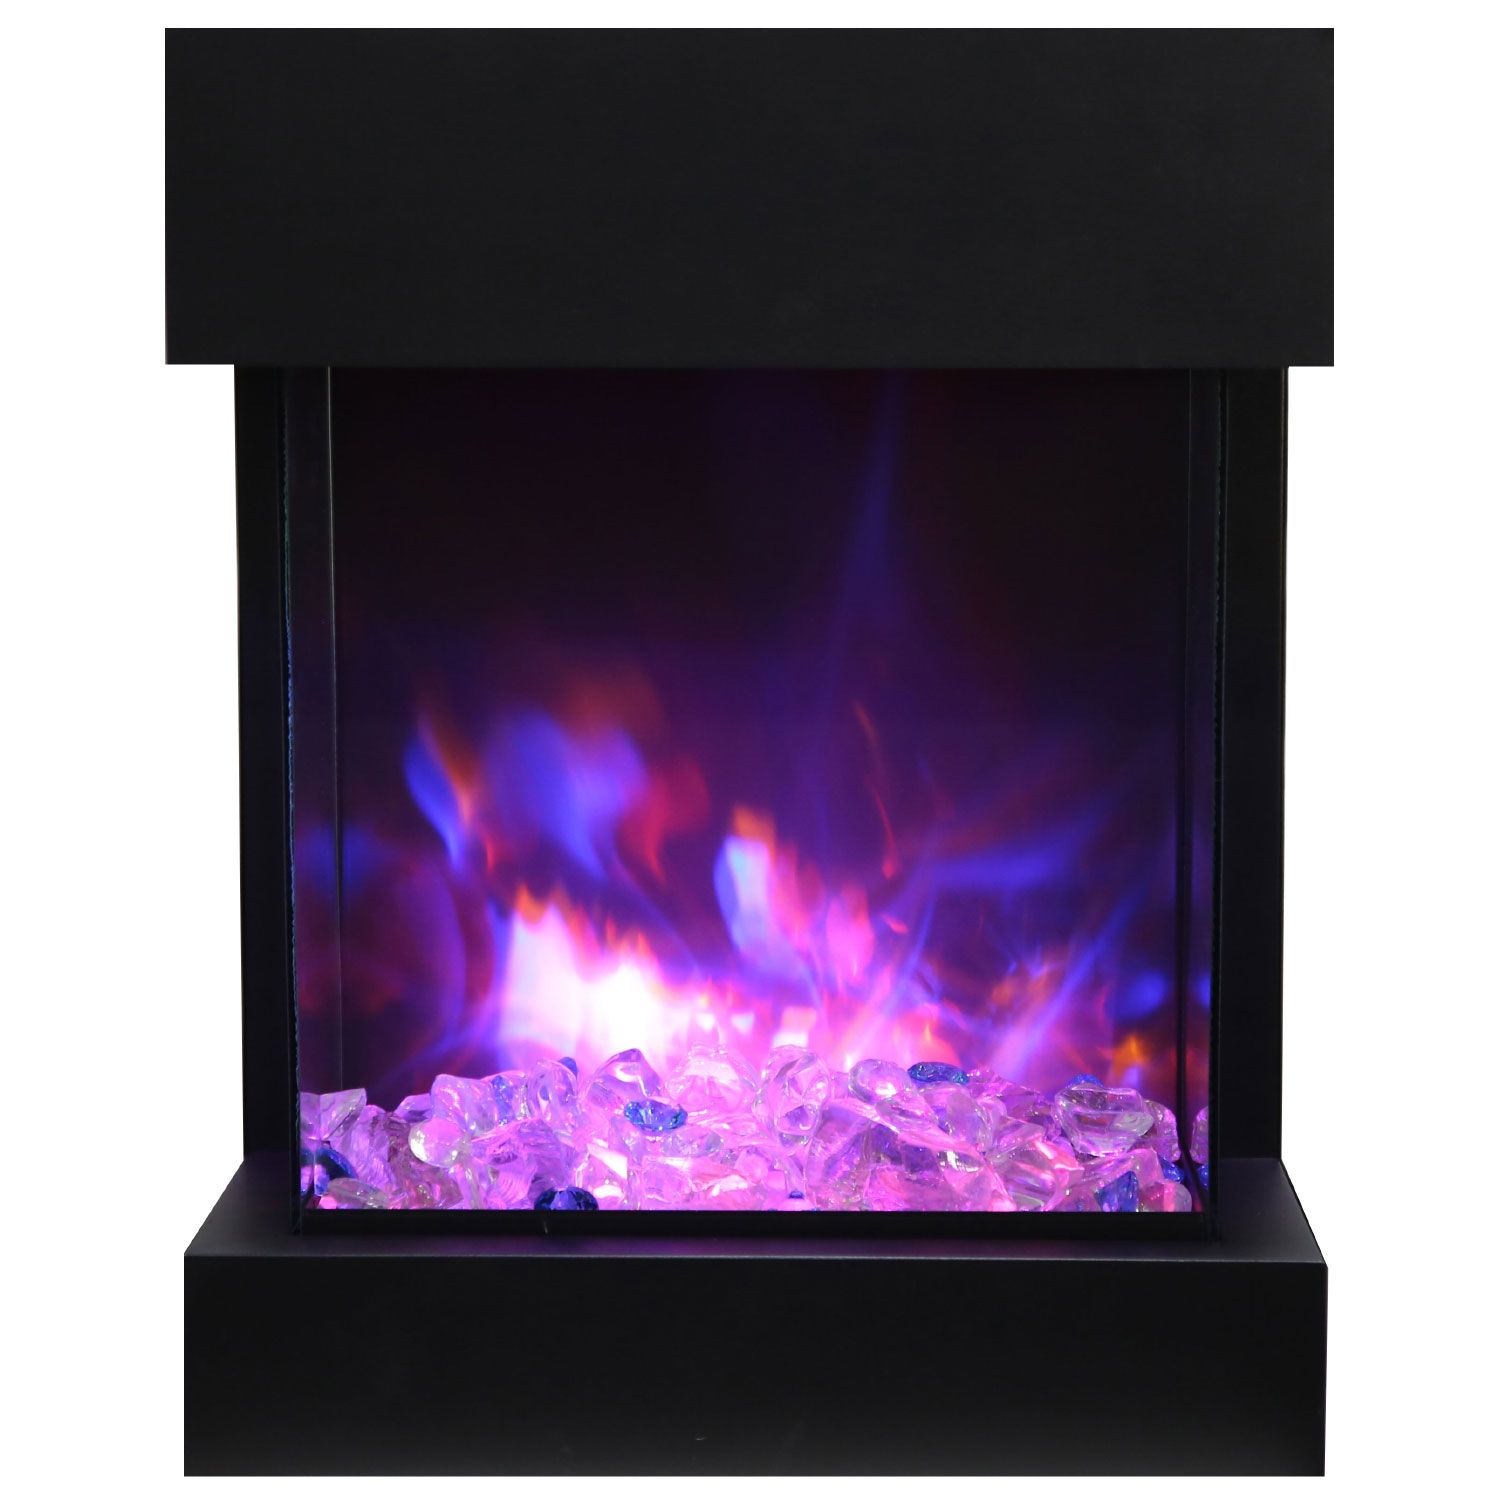 Amantii Cube 2025wm Cube 25 3 Sided Glass Electric Fireplace